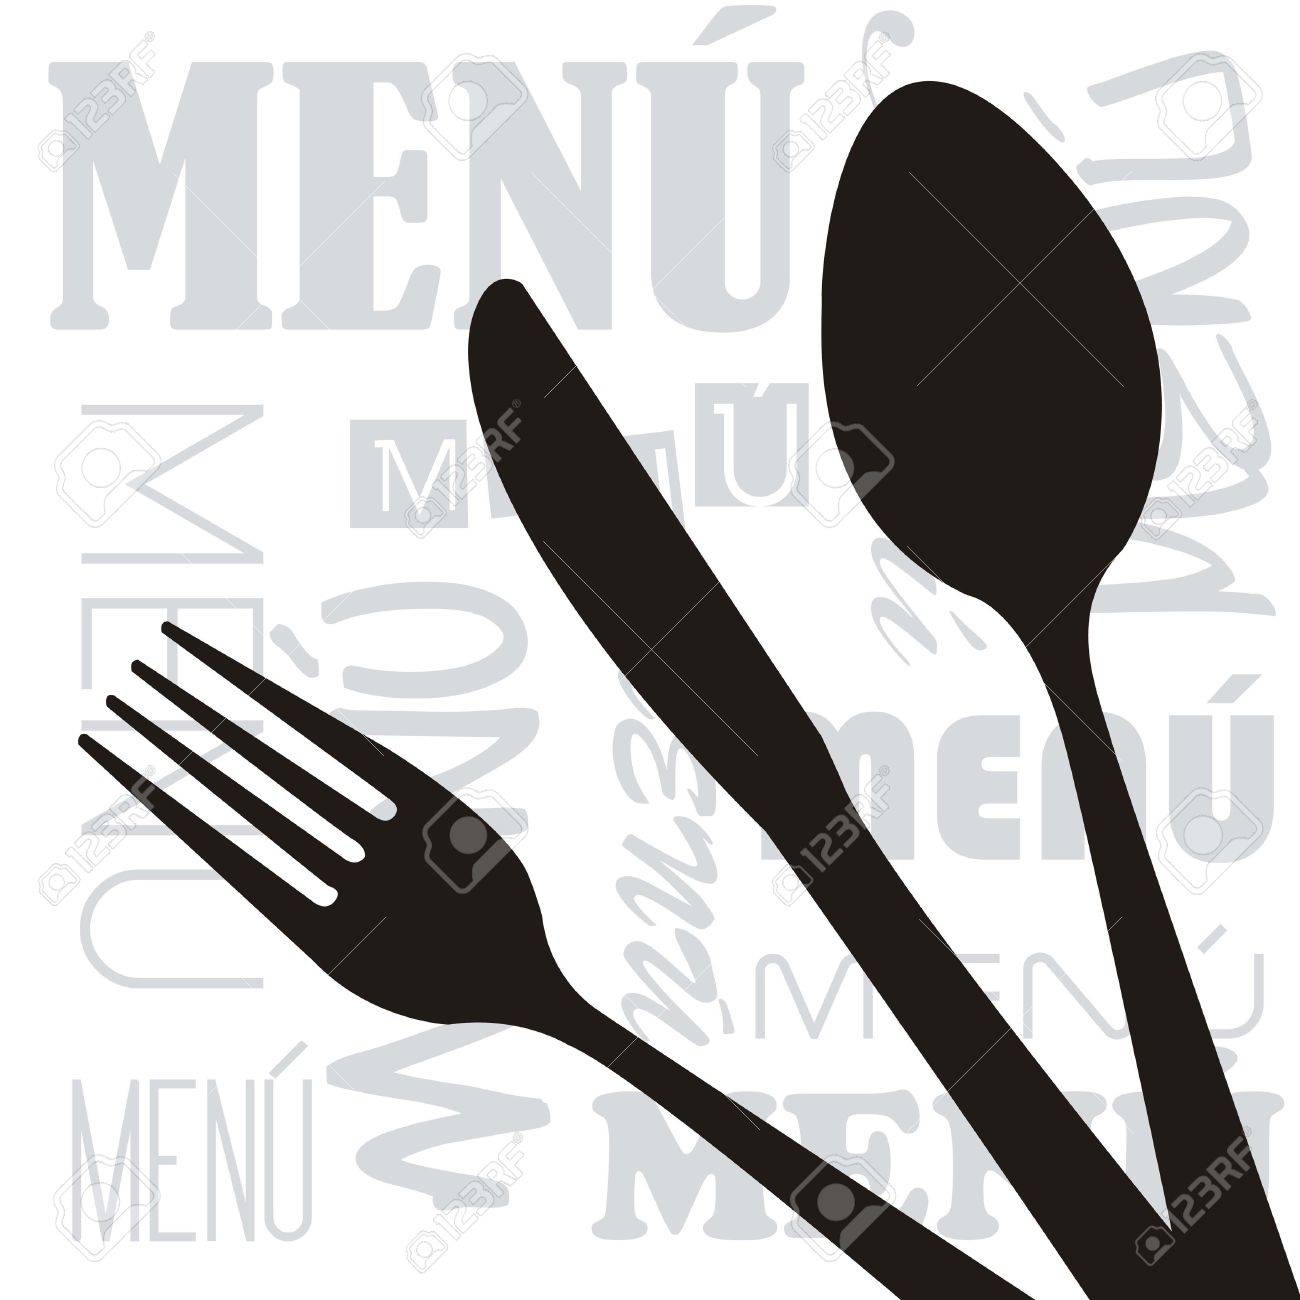 Menu With Silhouette Cutlery Background Vector Illustration 1300x1300